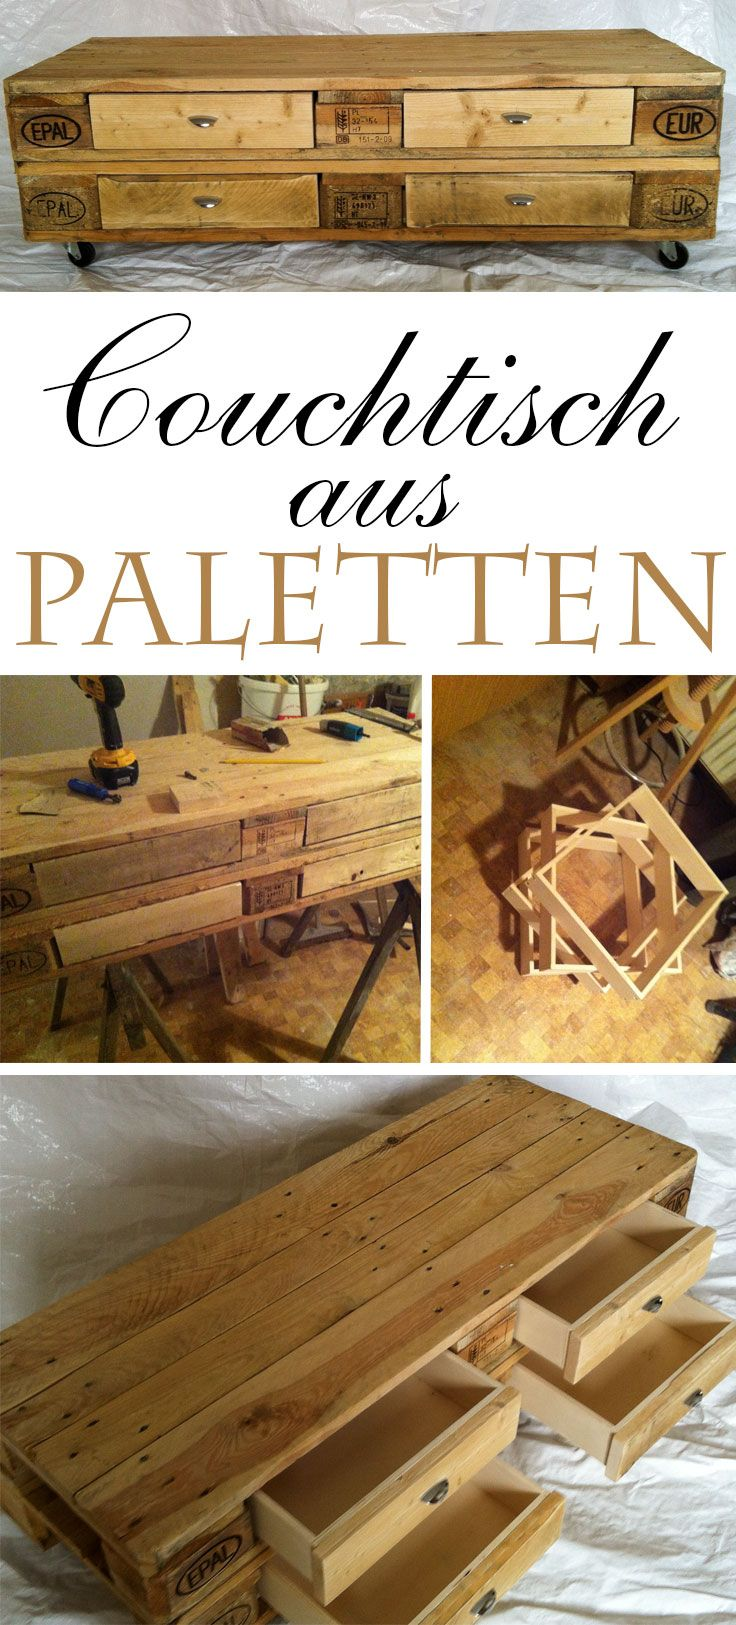 Couchtisch Tim Tim Zirwes T Zirwes On Pinterest